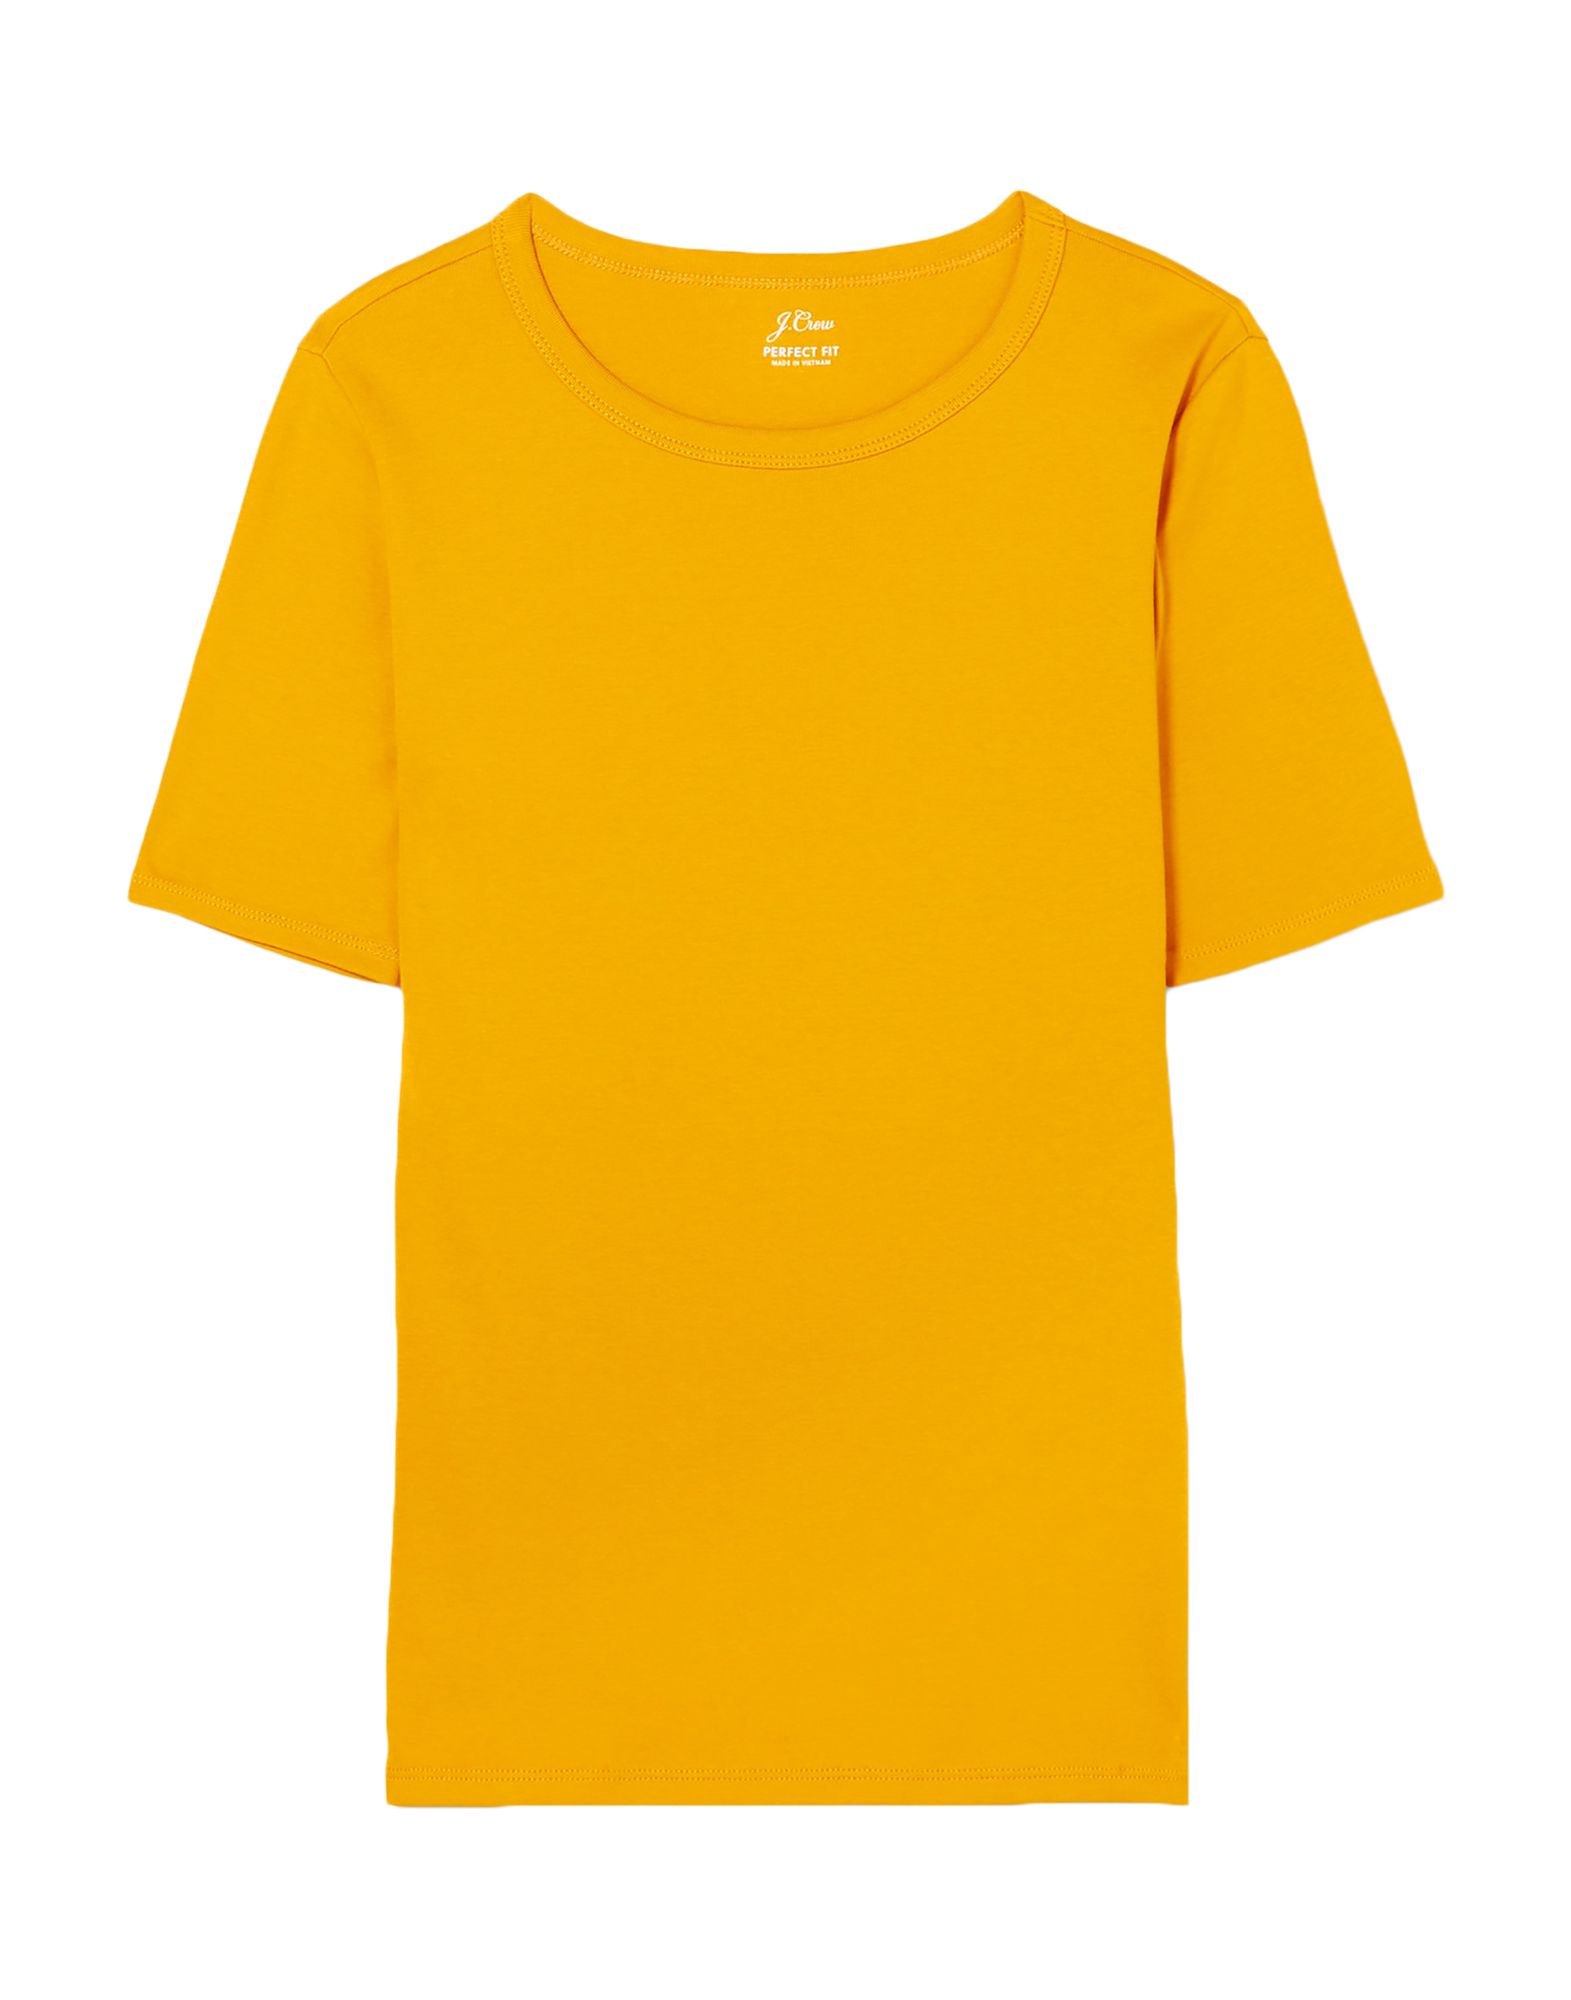 J.CREW T-shirts. jersey, no appliqués, basic solid color, round collar, short sleeves, no pockets. 100% Cotton